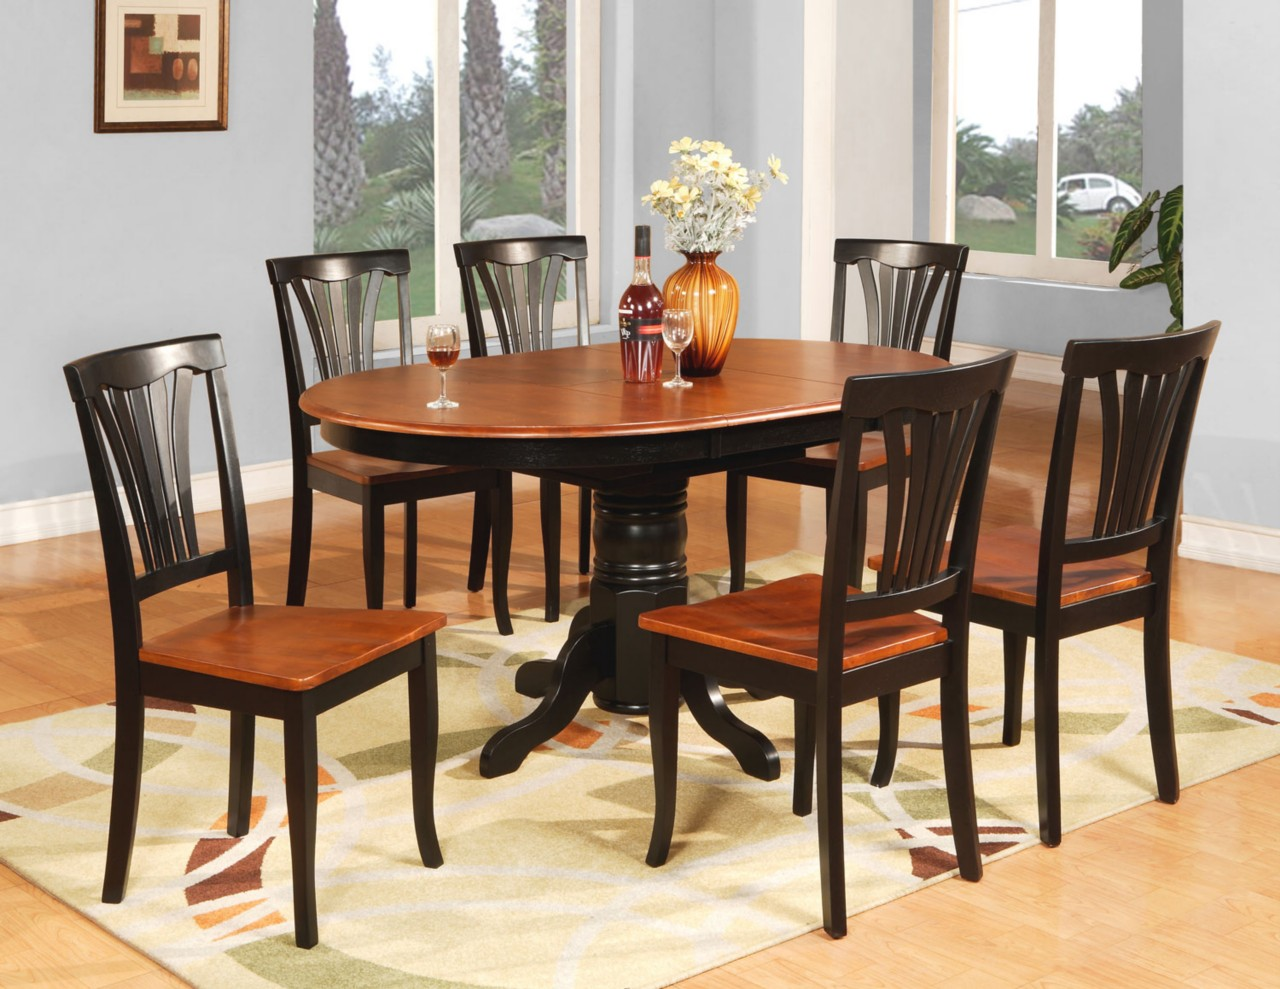 7 pc oval dinette kitchen dining room table 6 chairs ebay for 6 seater dining room table and chairs